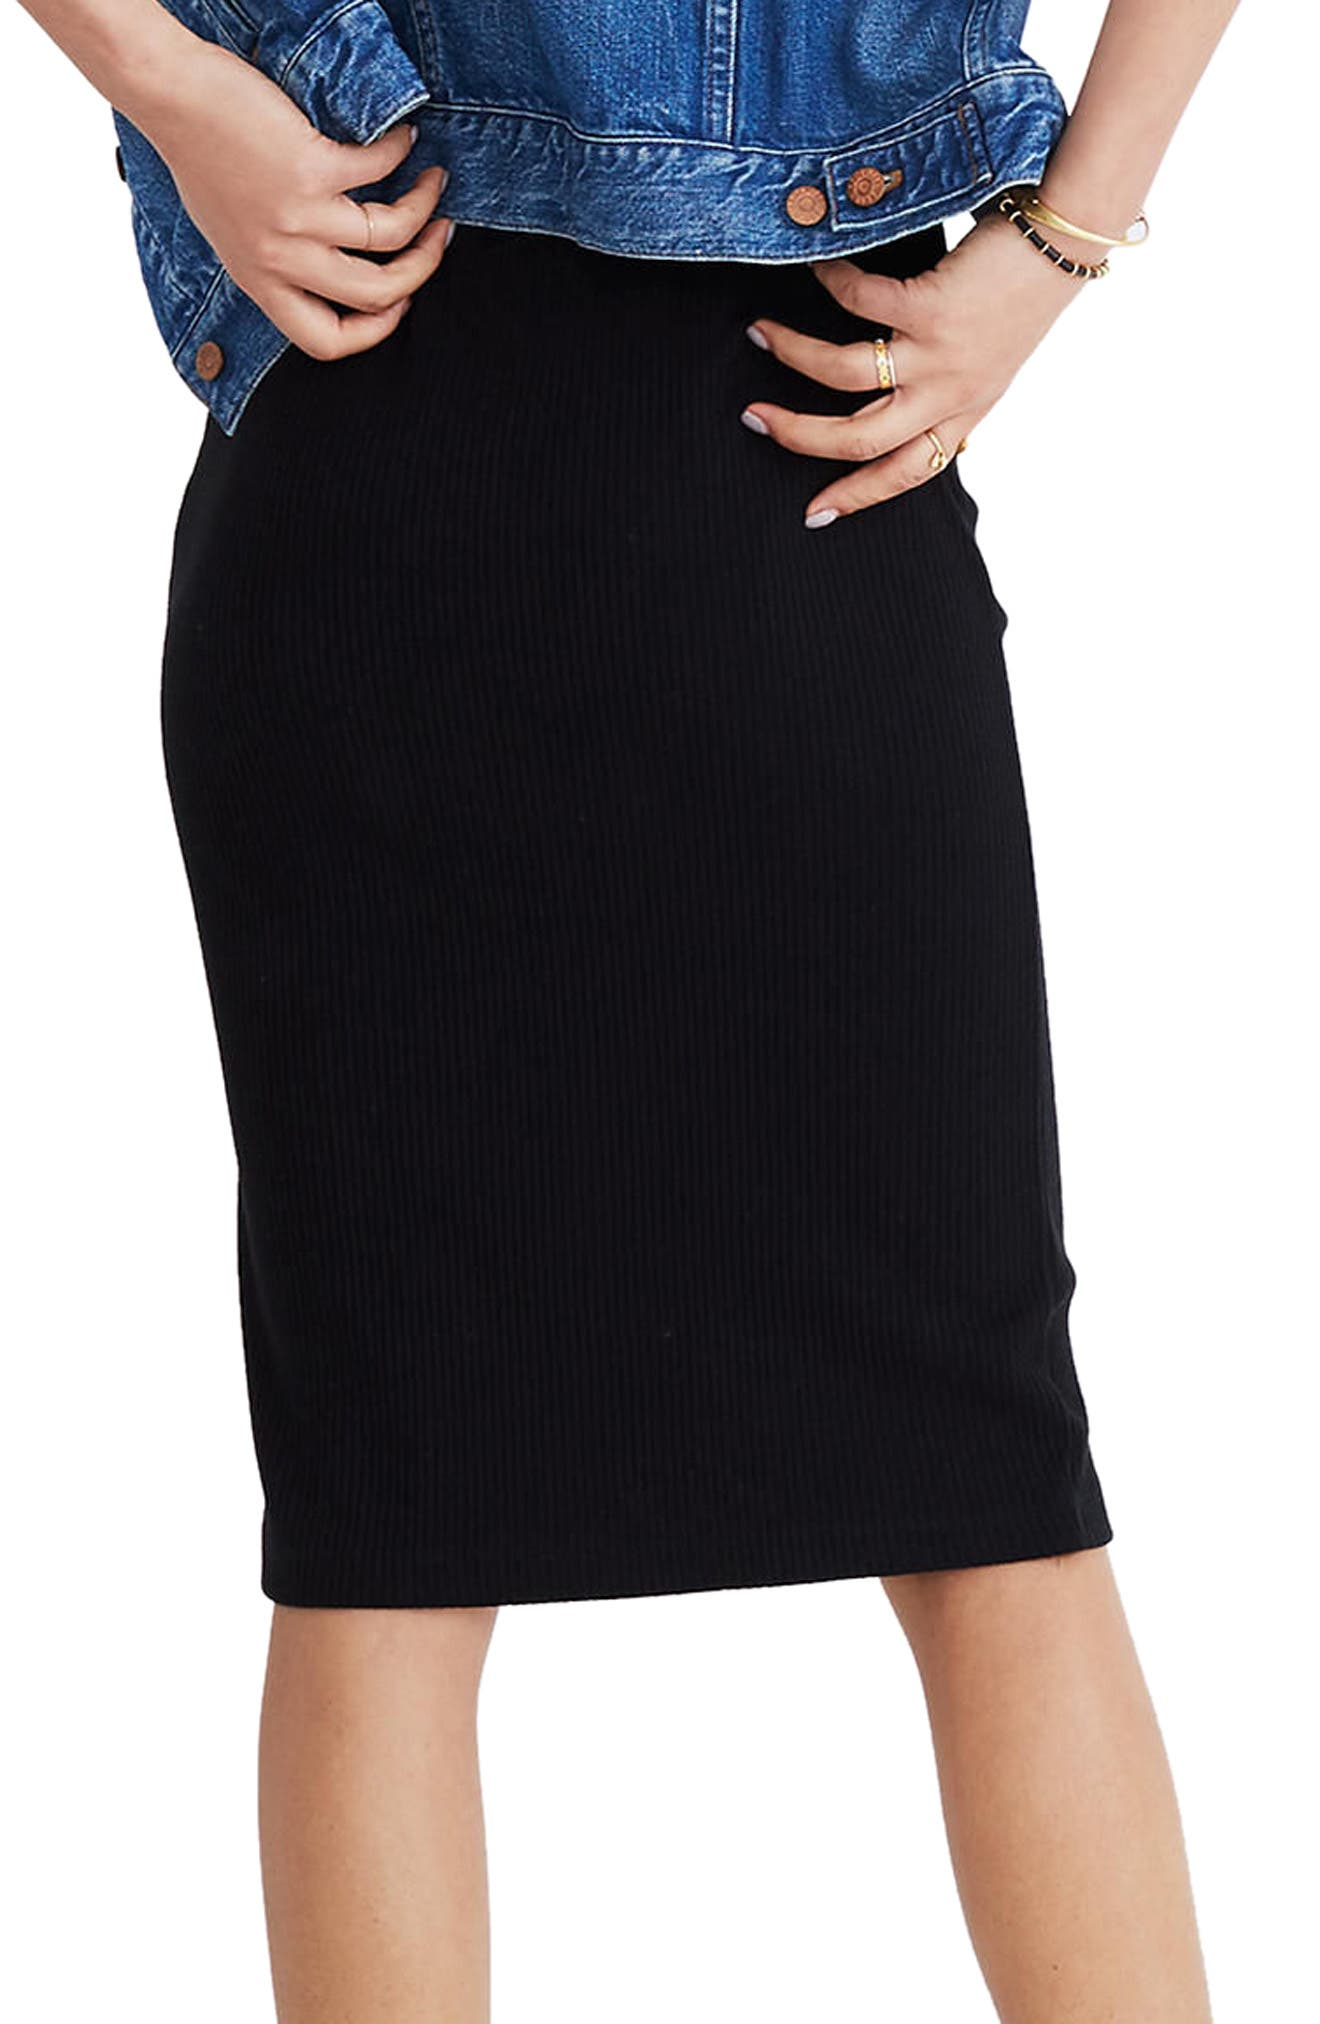 Ribbed Pencil Skirt,                             Alternate thumbnail 2, color,                             001